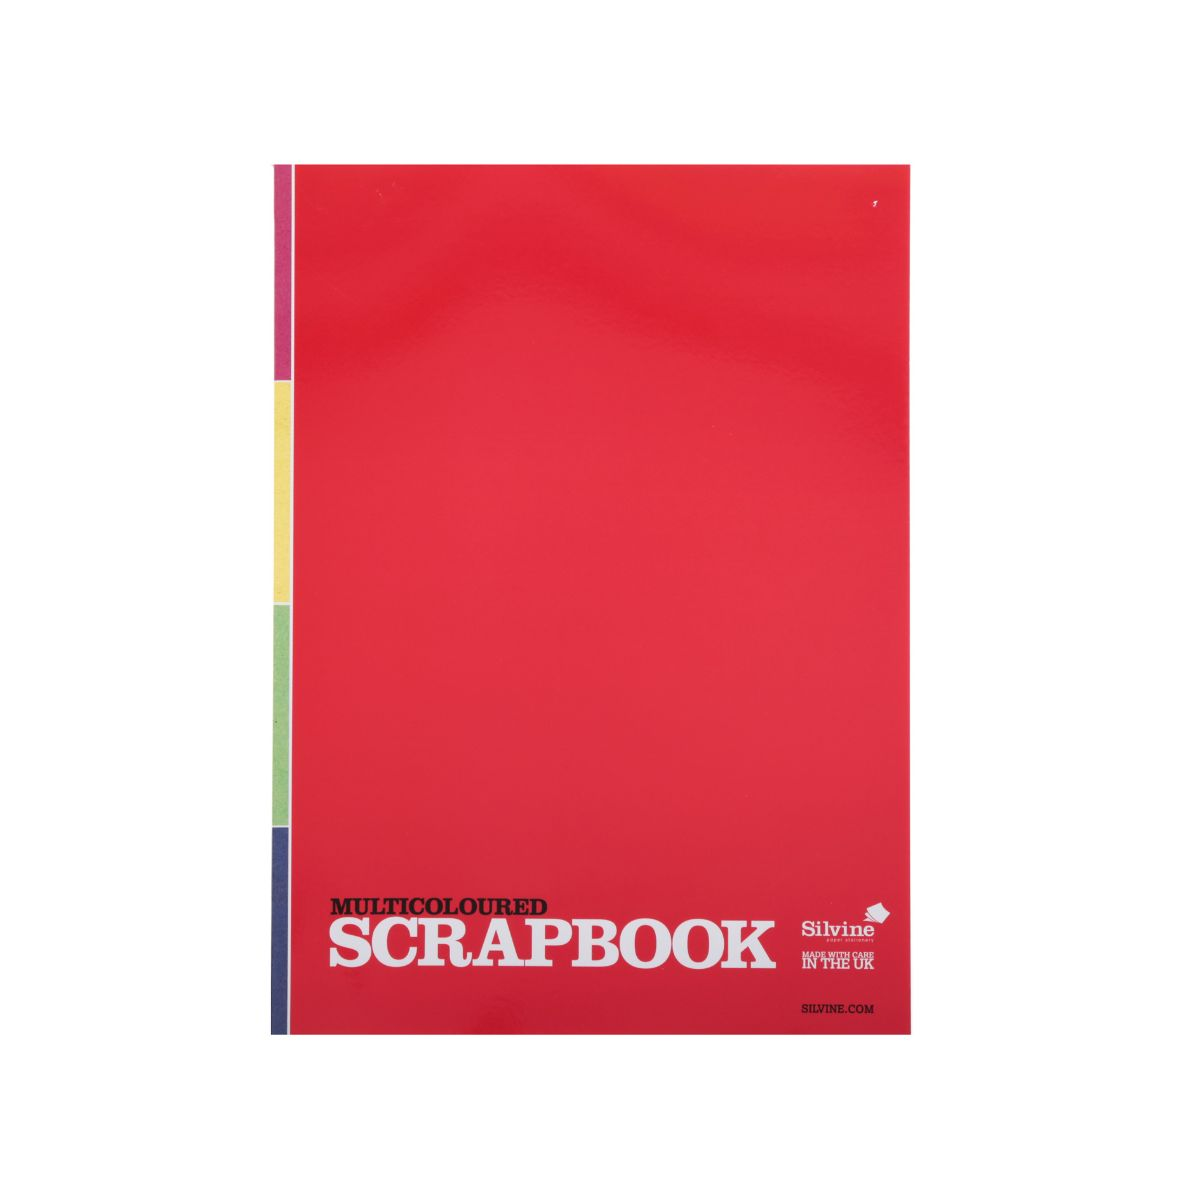 How to refill scrapbook pages - How To Refill Scrapbook Pages 47